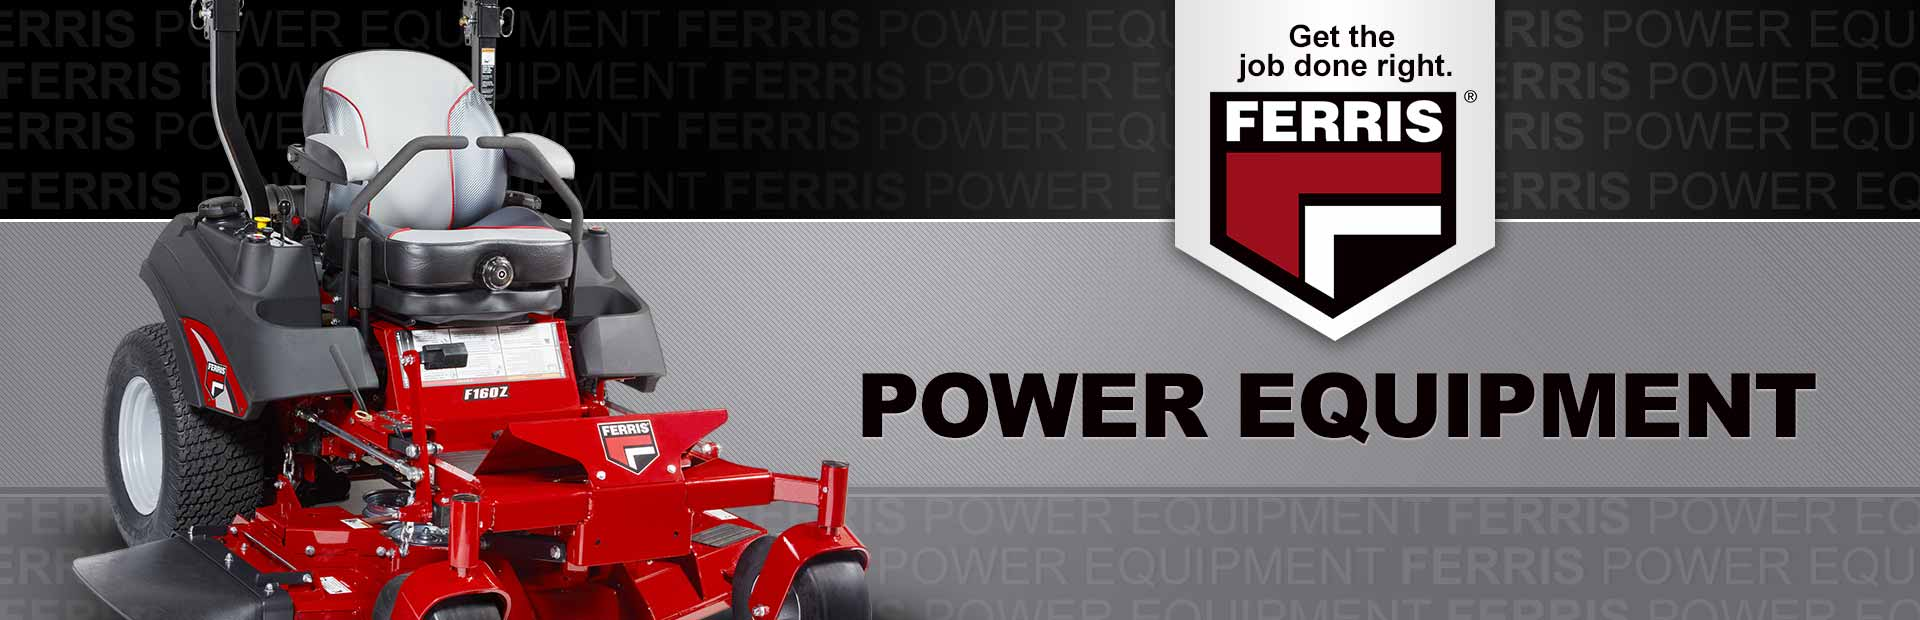 Ferris Power Equipment: Click here to view the models.